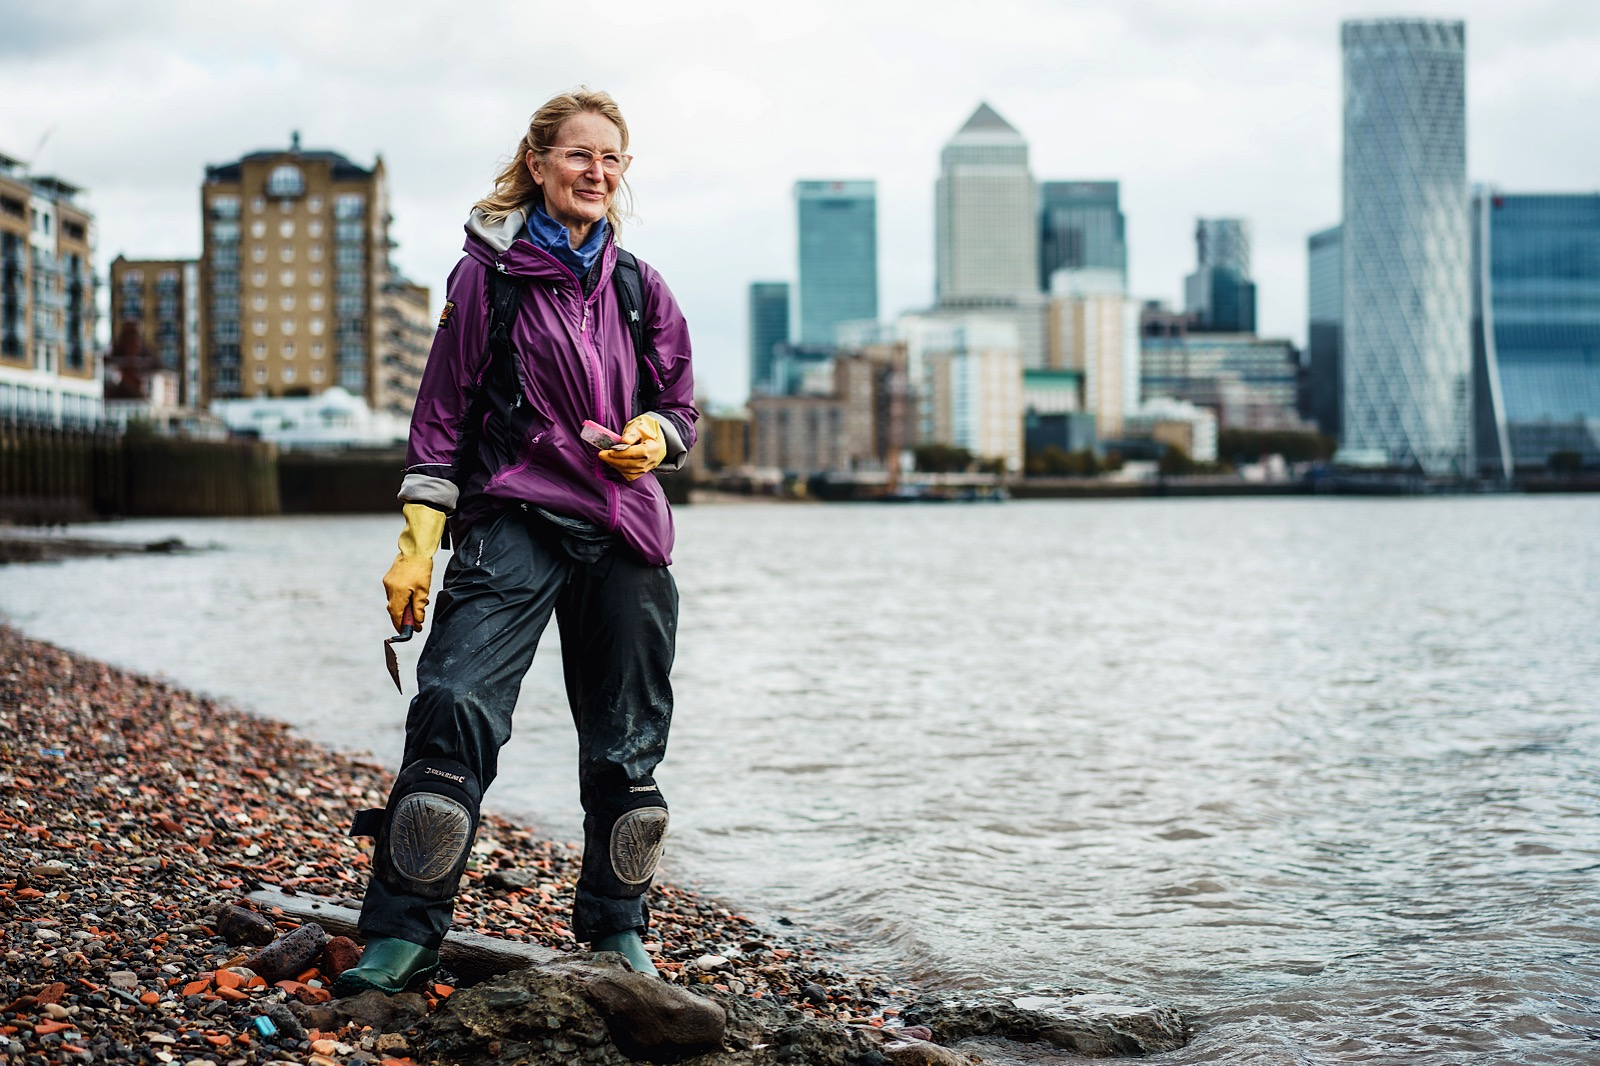 Mudlarker on shore of River Thames with trowel in her hand